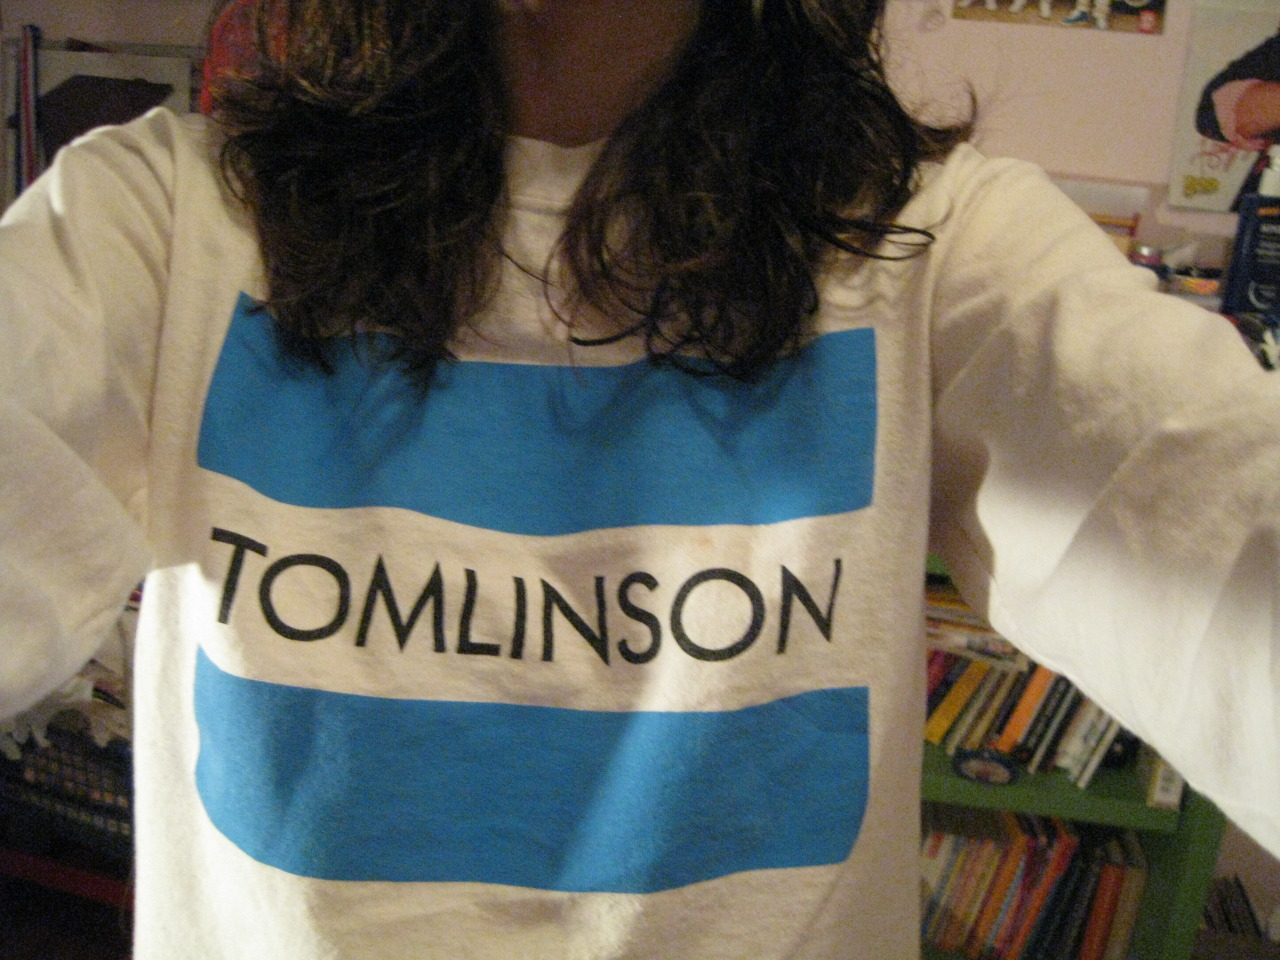 asdfghjkl this shirt omfg